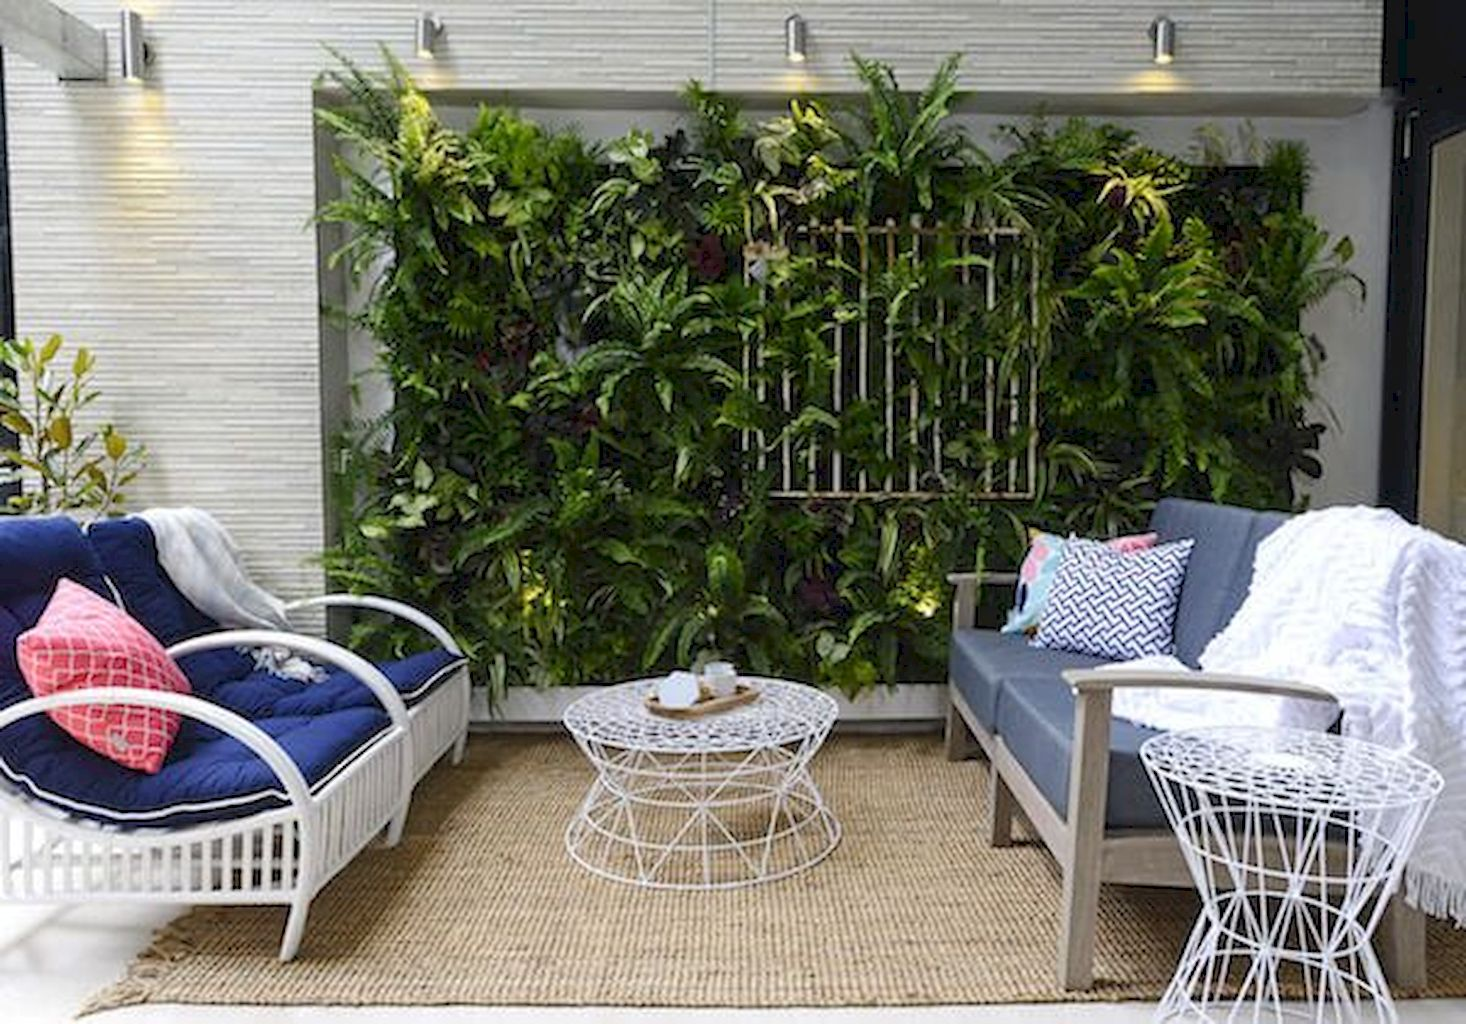 Best Indoor Plants for Tropical Home Decoration Part 28 ...